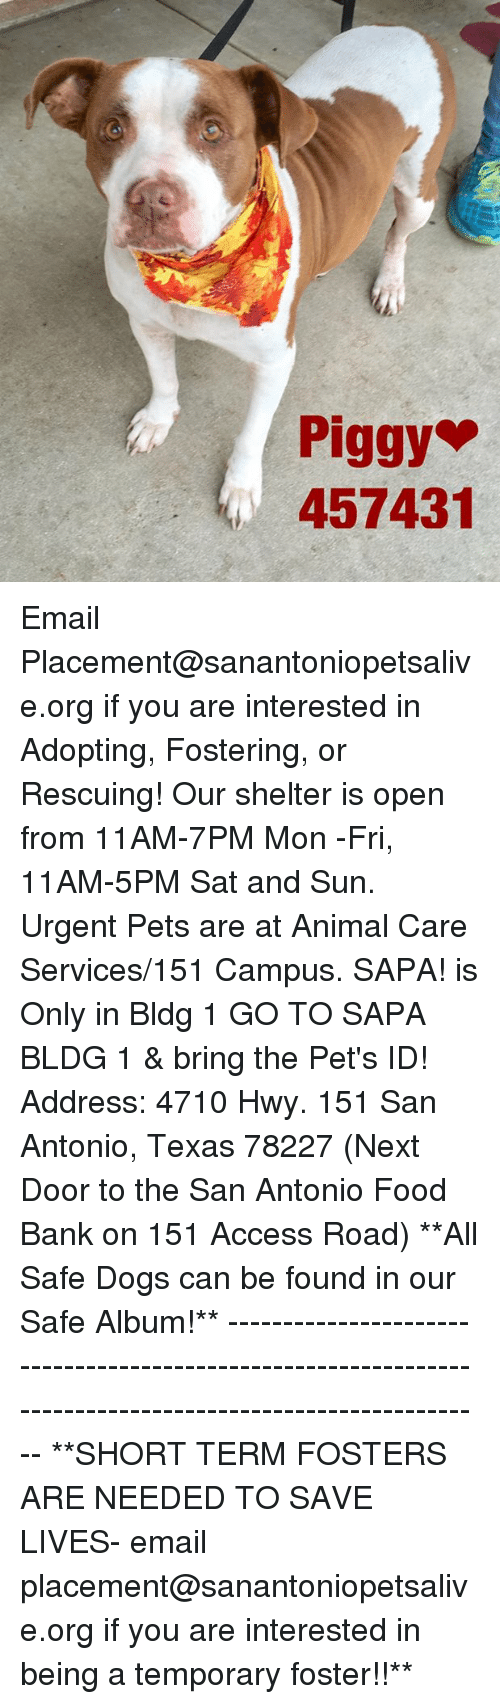 Dogs, Food, and Memes: Piggy  457431 Email Placement@sanantoniopetsalive.org if you are interested in Adopting, Fostering, or Rescuing!  Our shelter is open from 11AM-7PM Mon -Fri, 11AM-5PM Sat and Sun.  Urgent Pets are at Animal Care Services/151 Campus. SAPA! is Only in Bldg 1 GO TO SAPA BLDG 1 & bring the Pet's ID! Address: 4710 Hwy. 151 San Antonio, Texas 78227 (Next Door to the San Antonio Food Bank on 151 Access Road)  **All Safe Dogs can be found in our Safe Album!** ---------------------------------------------------------------------------------------------------------- **SHORT TERM FOSTERS ARE NEEDED TO SAVE LIVES- email placement@sanantoniopetsalive.org if you are interested in being a temporary foster!!**